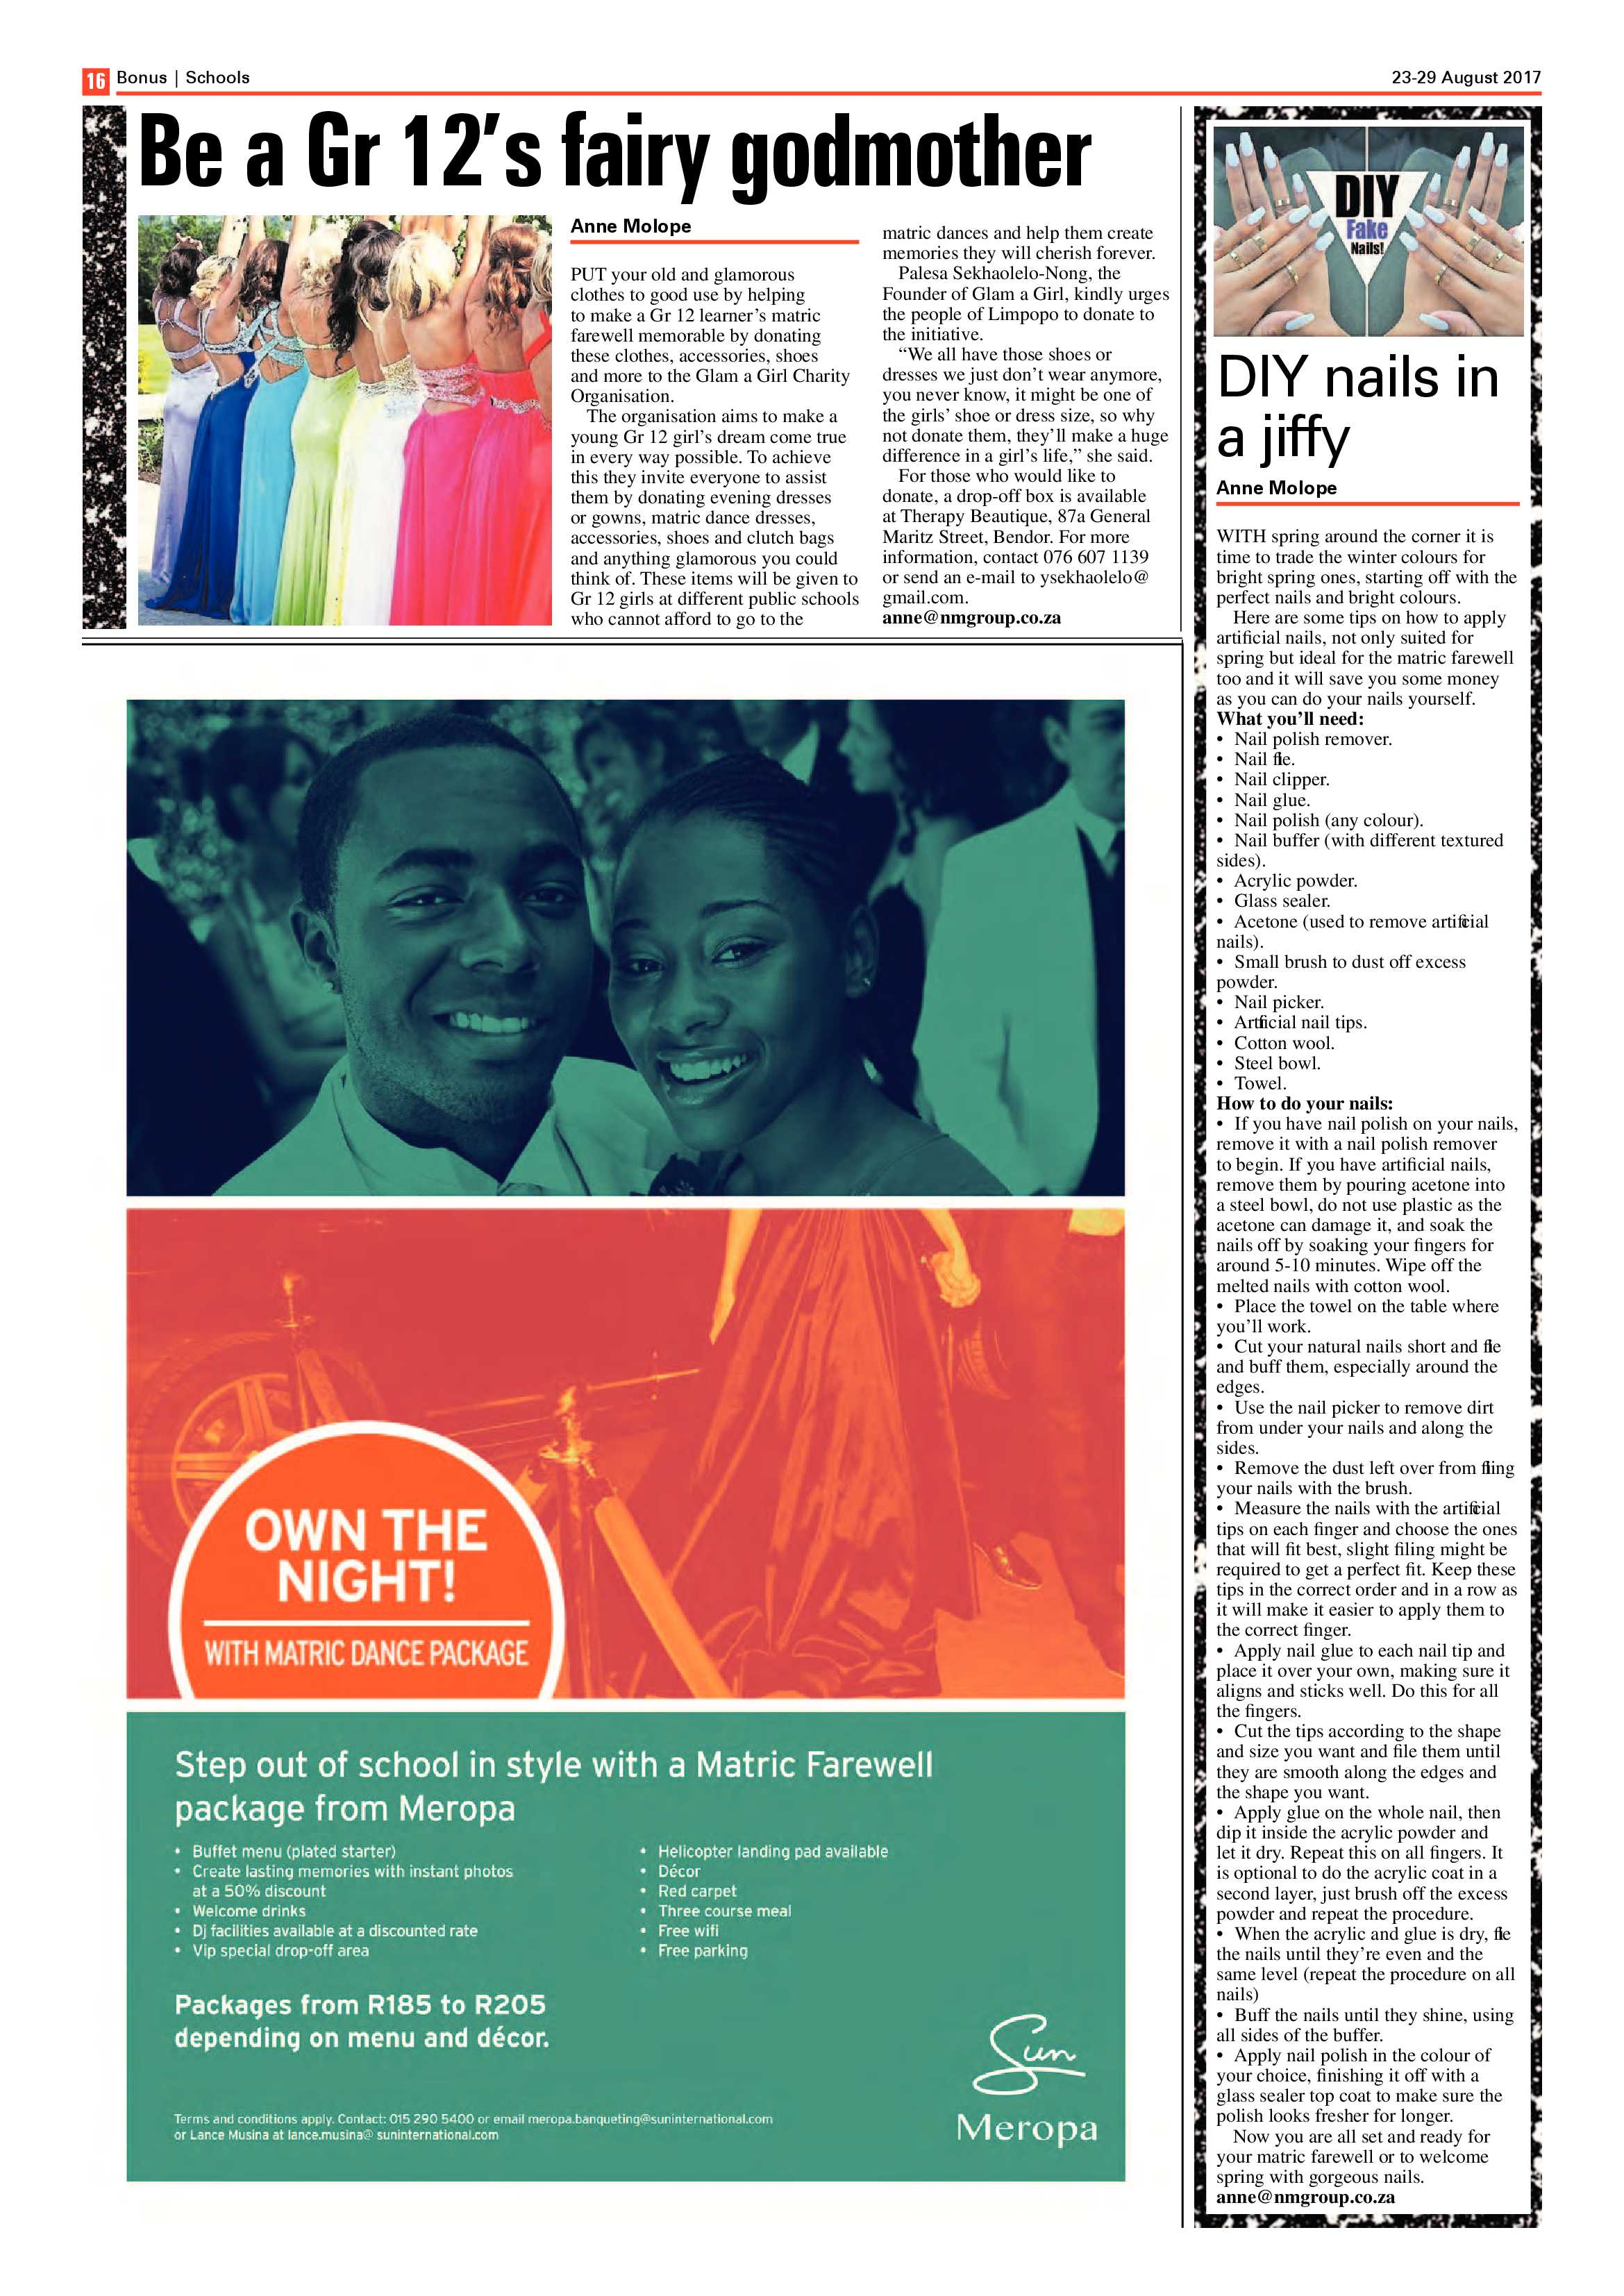 review-bonus-23-august-2017-epapers-page-16